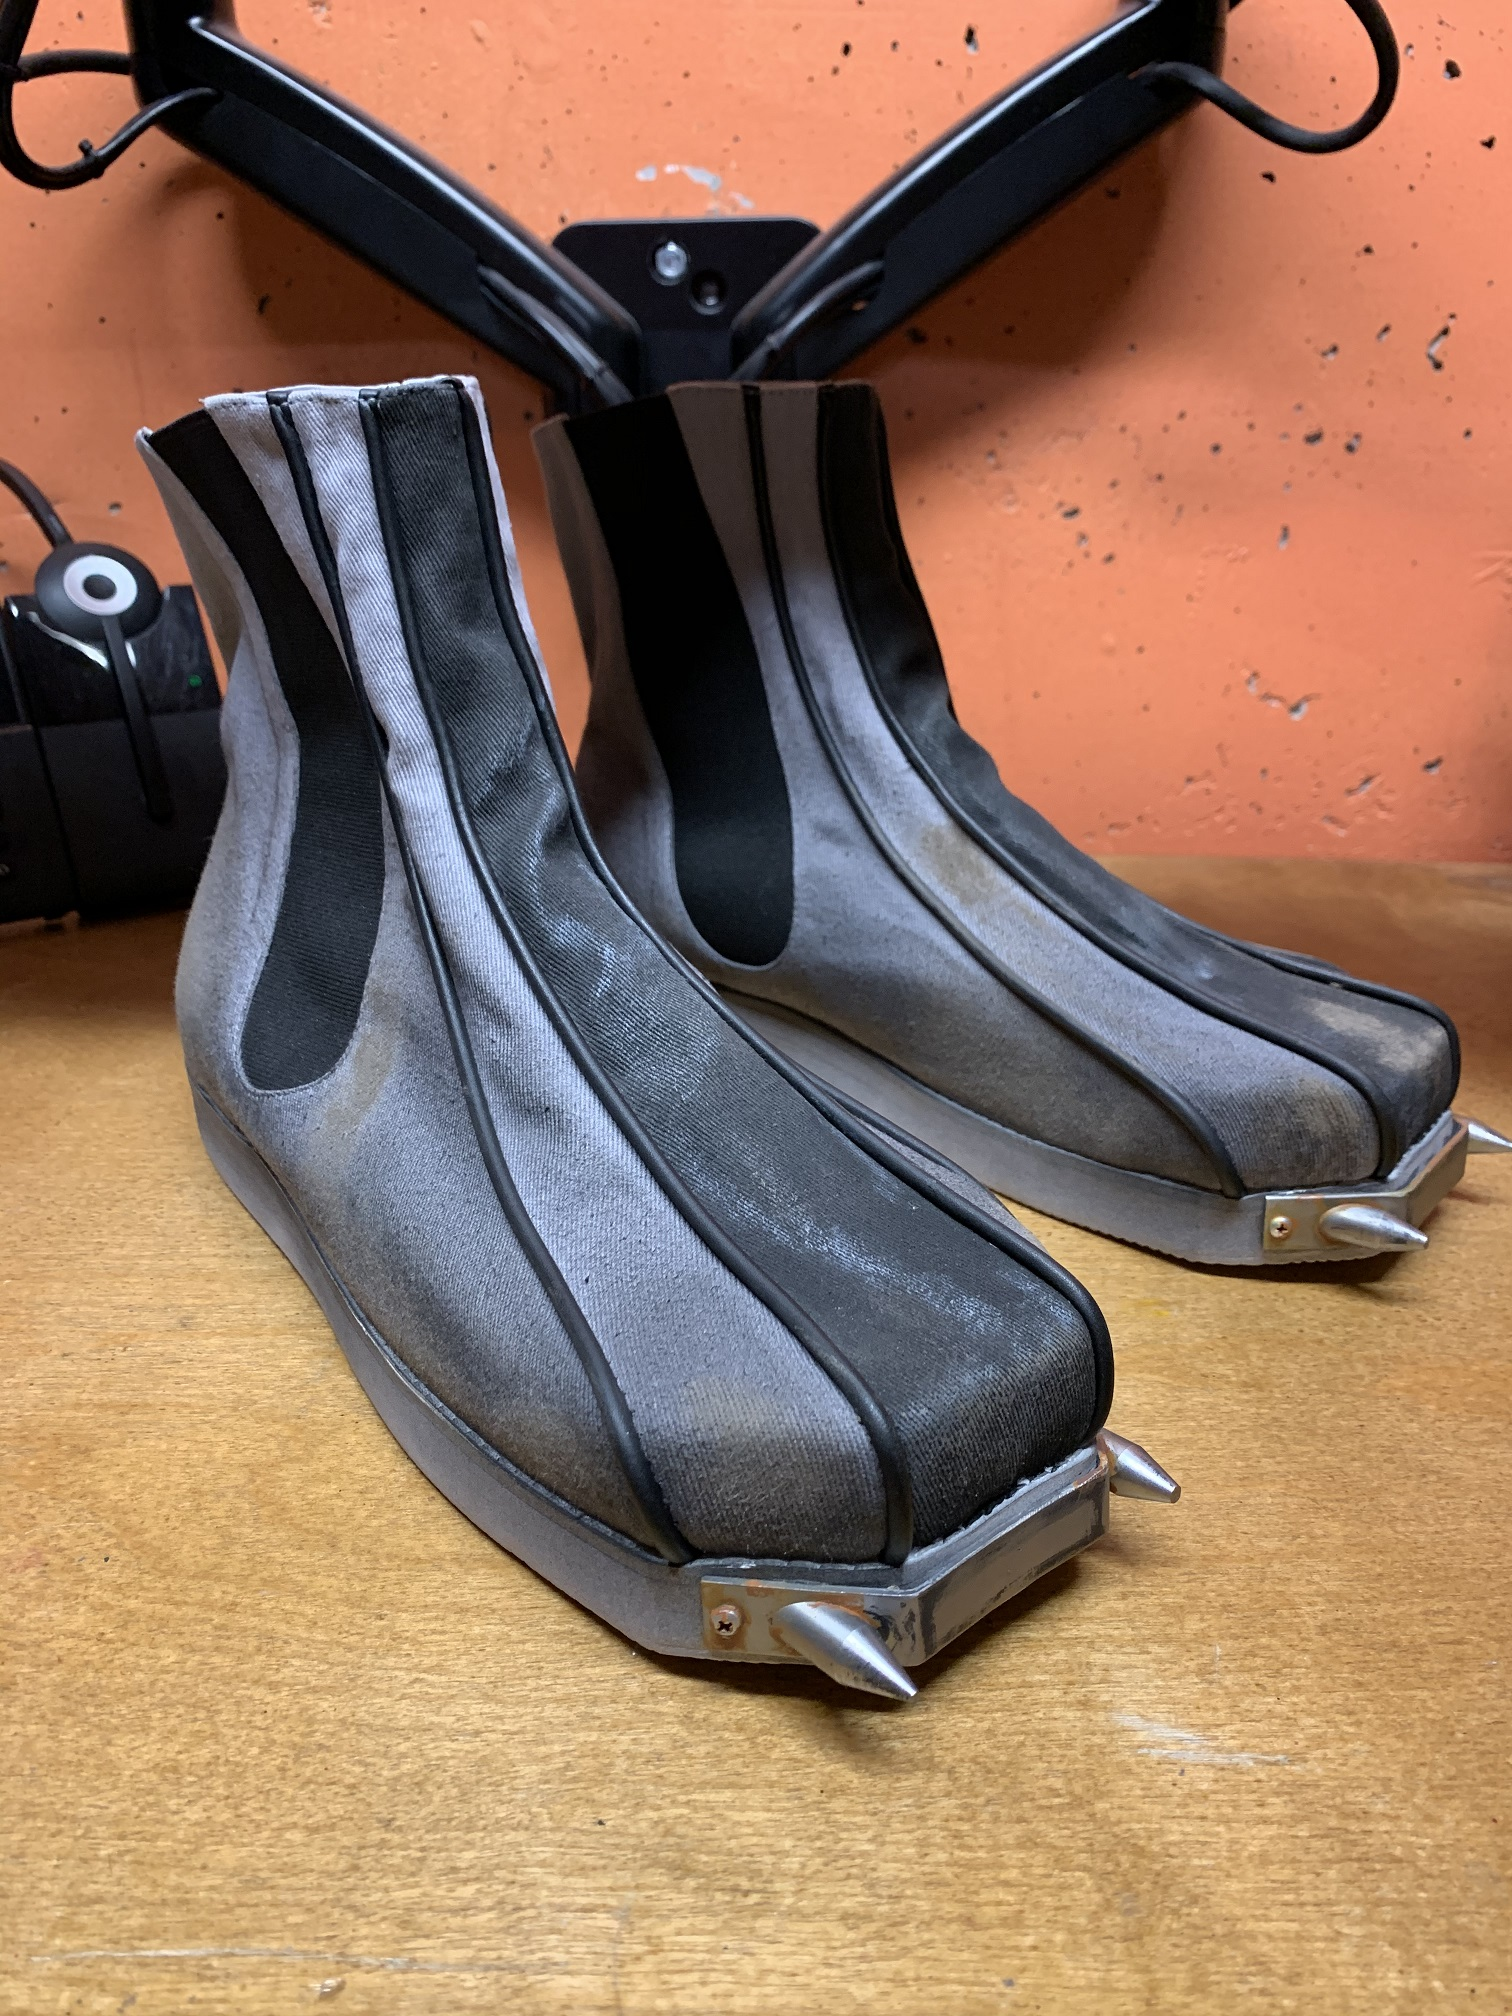 Boots with Spikes and Weathered.jpg